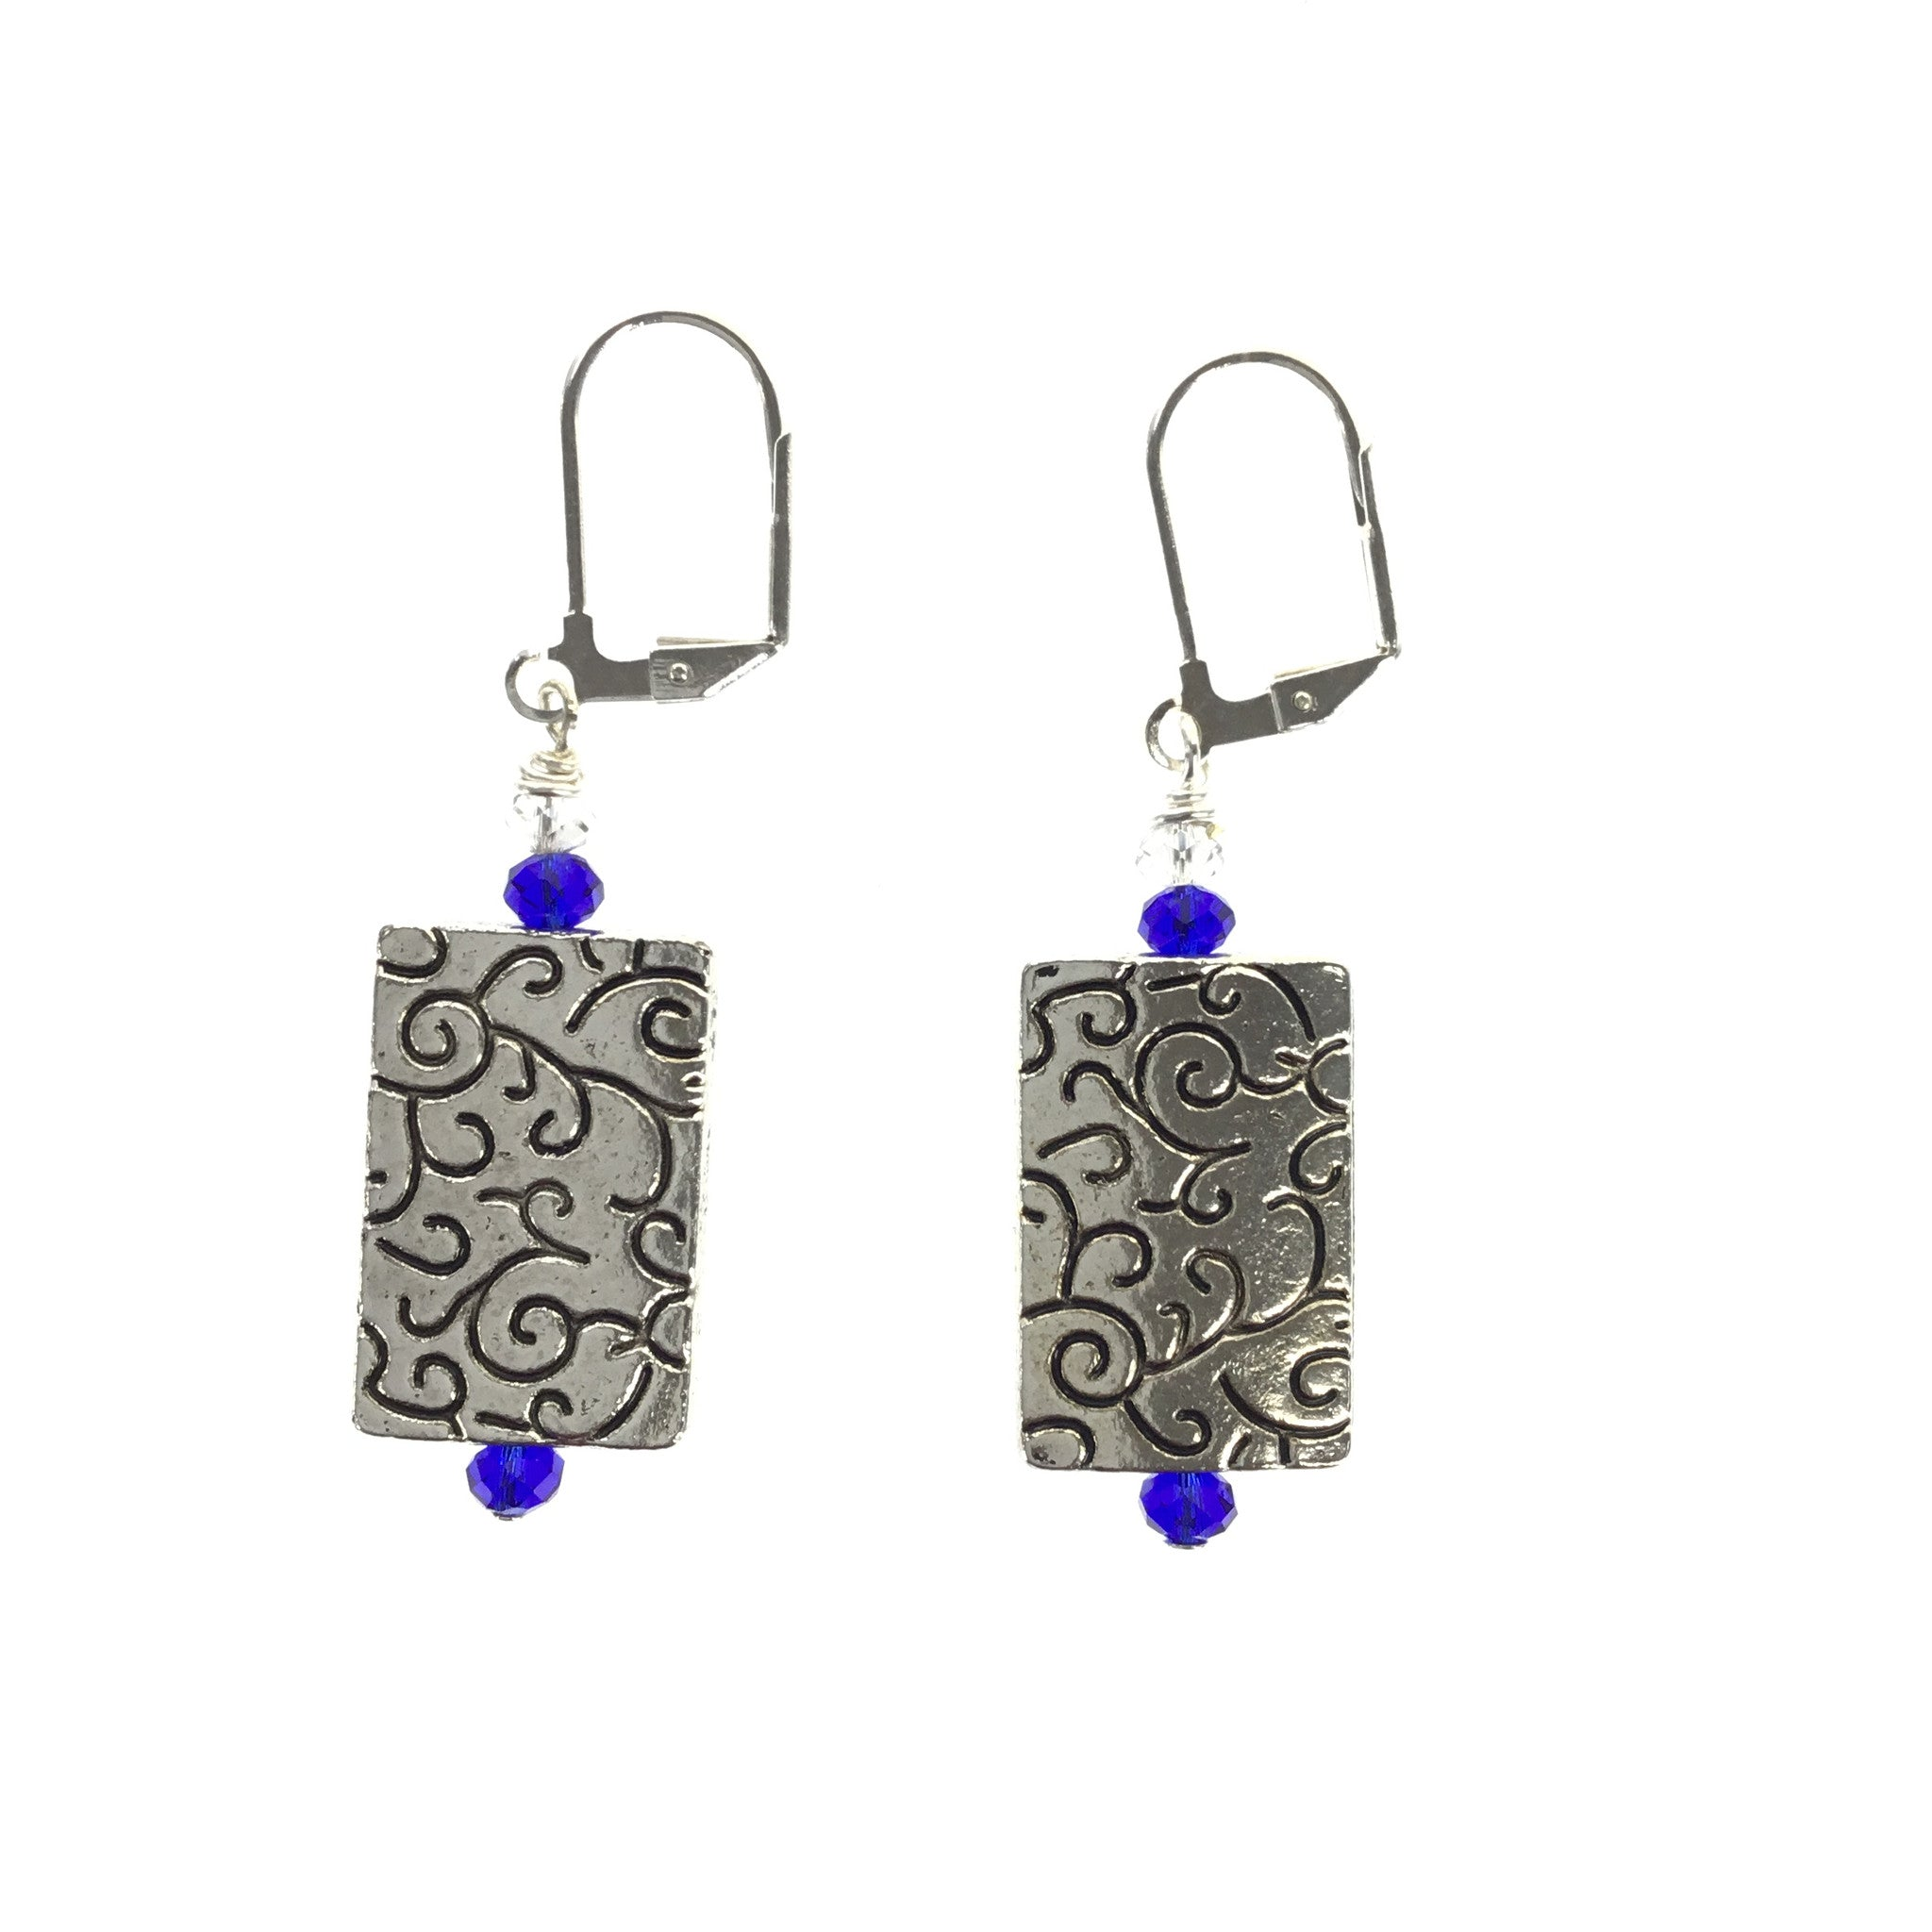 Blue and White Crystal Silver Earring - Real Chic Boutique  - 5